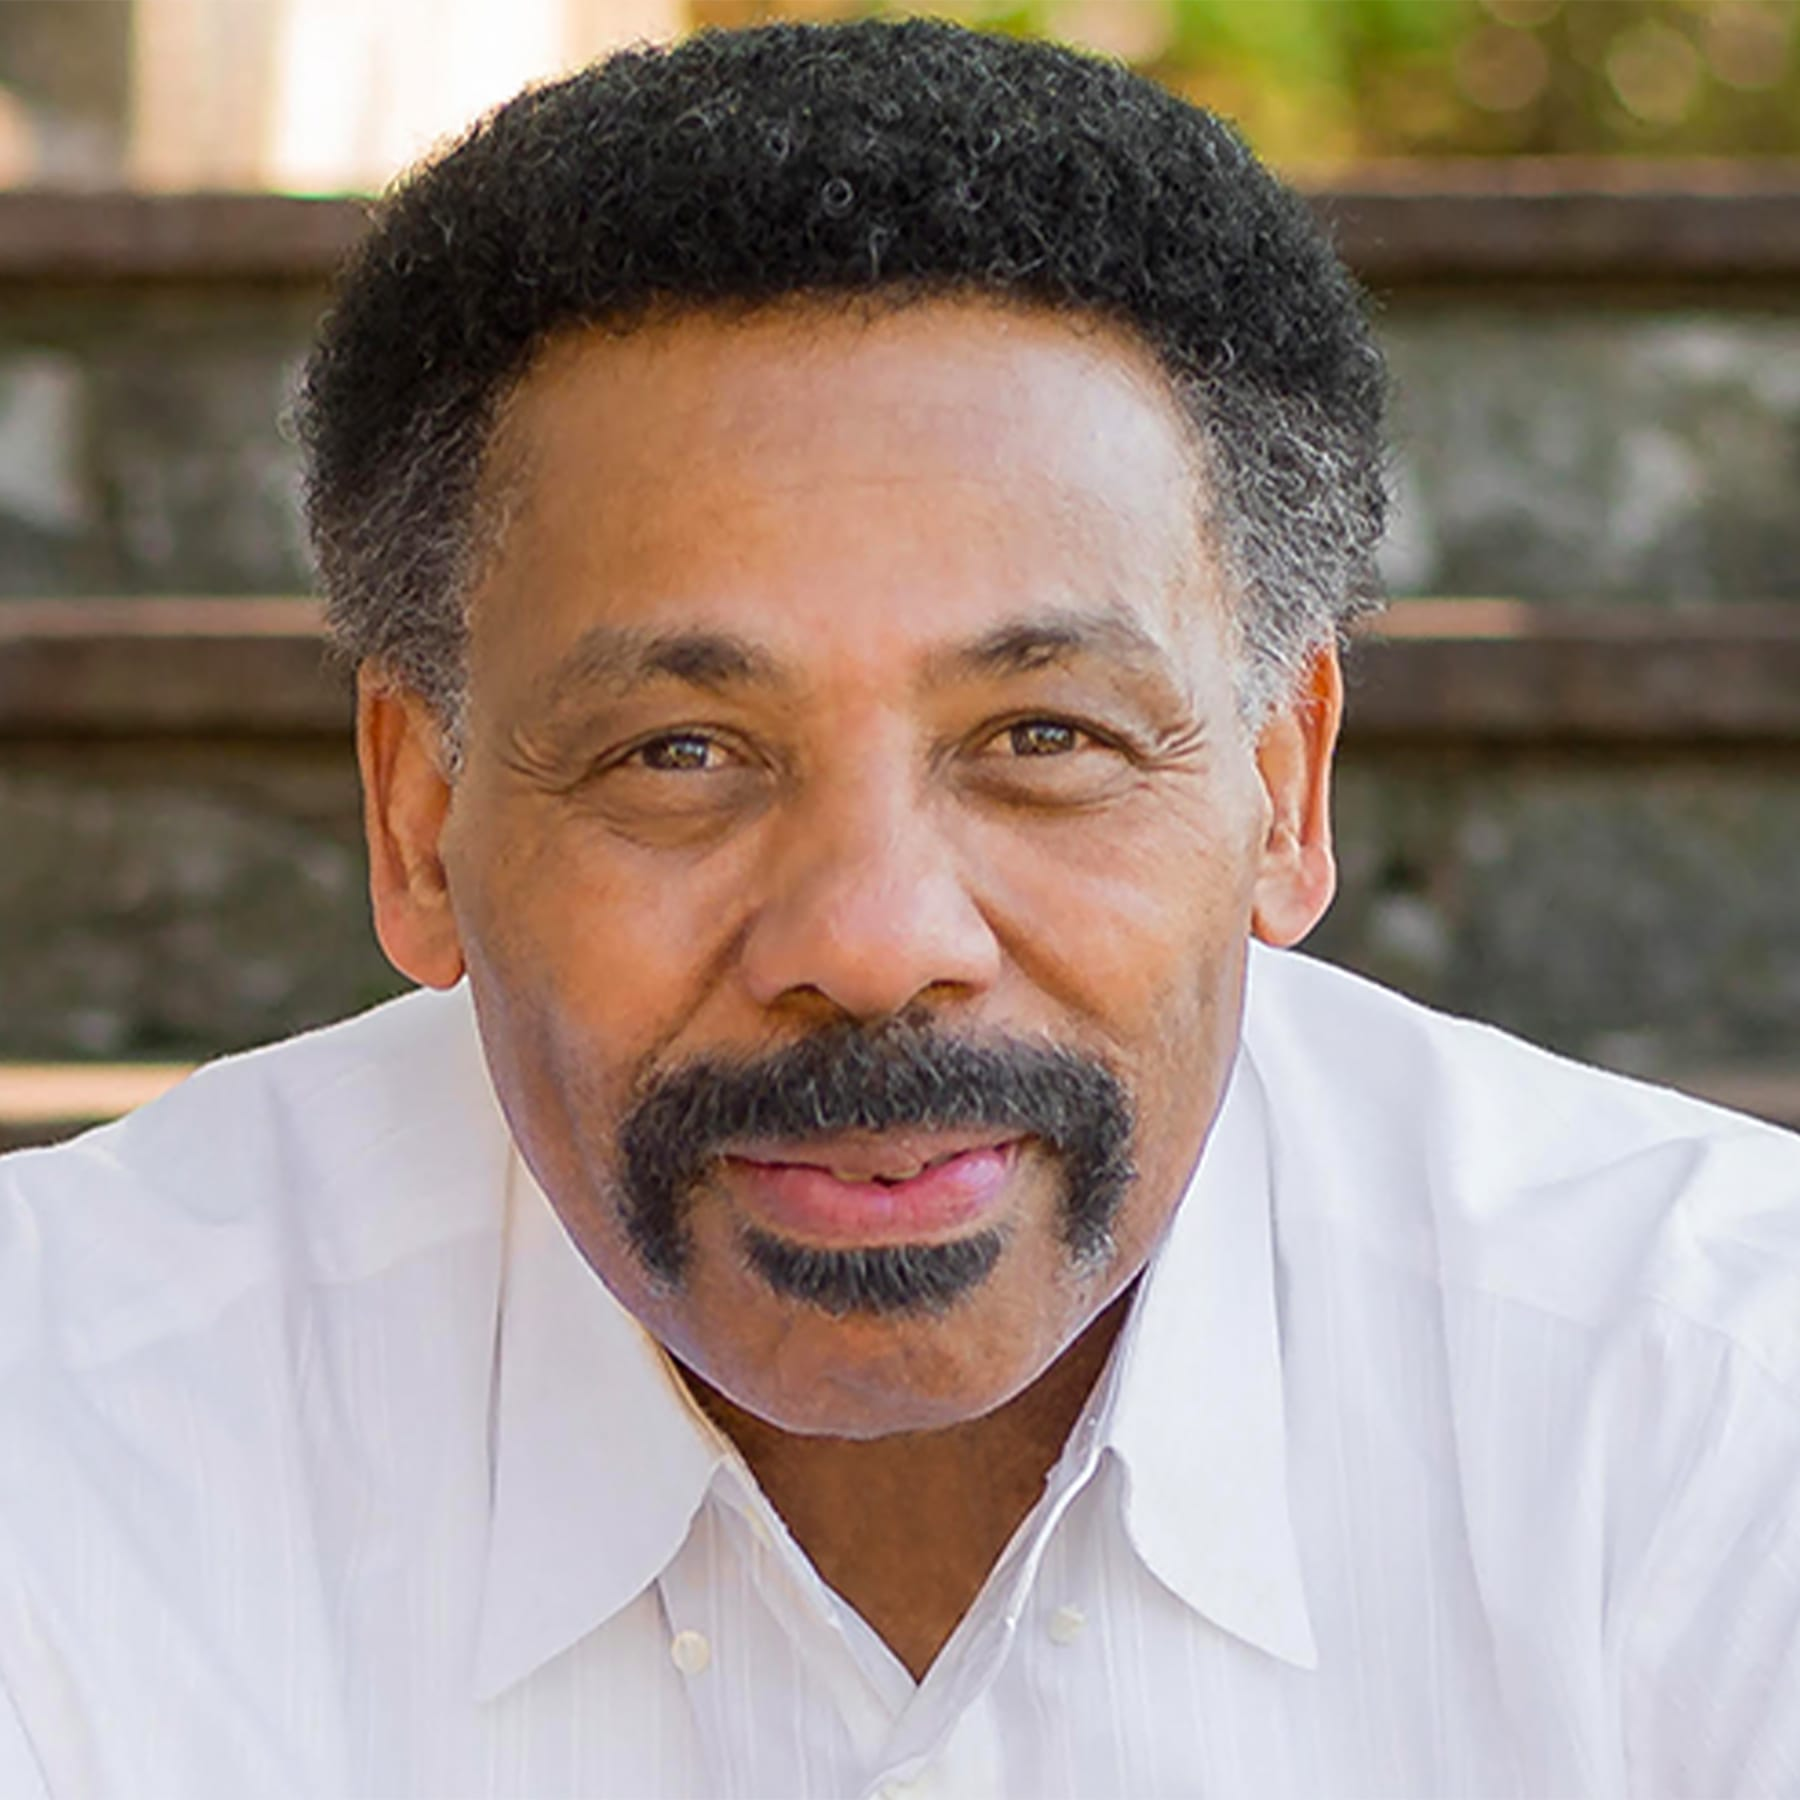 TONY EVANS: THE ALTERNATIVE